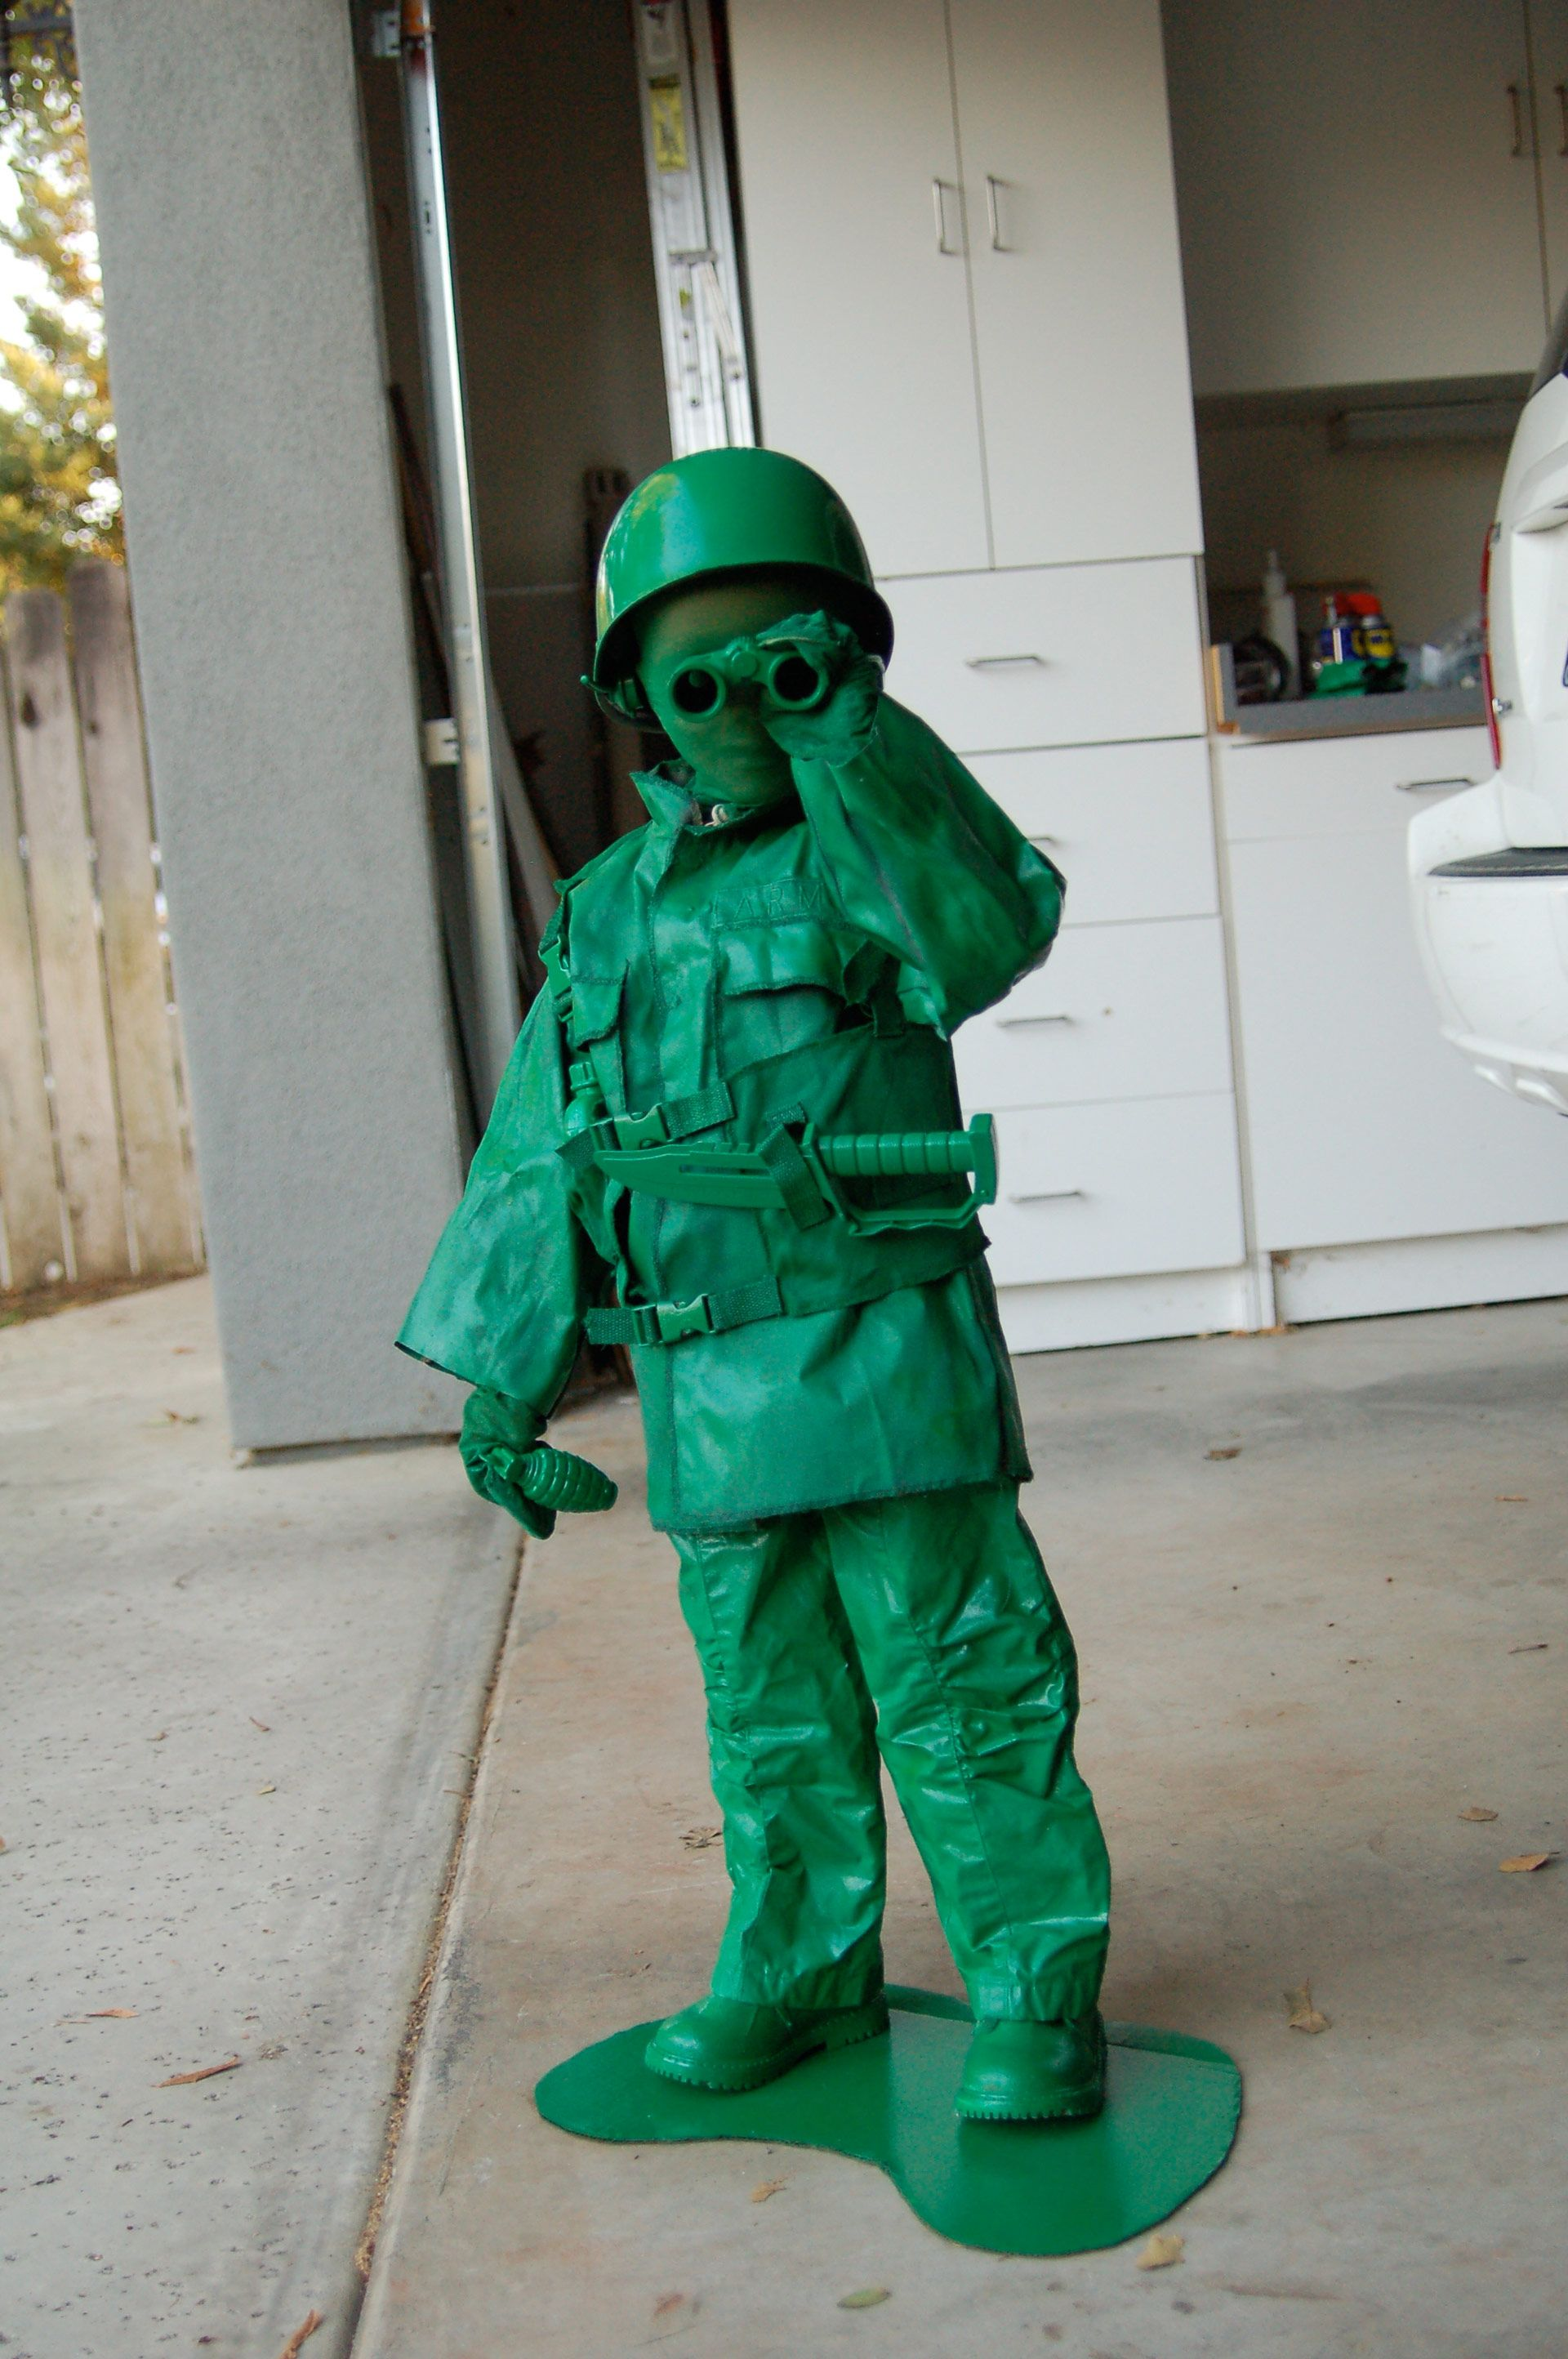 62 Utterly Adorable Homemade Halloween Costumes for Kids